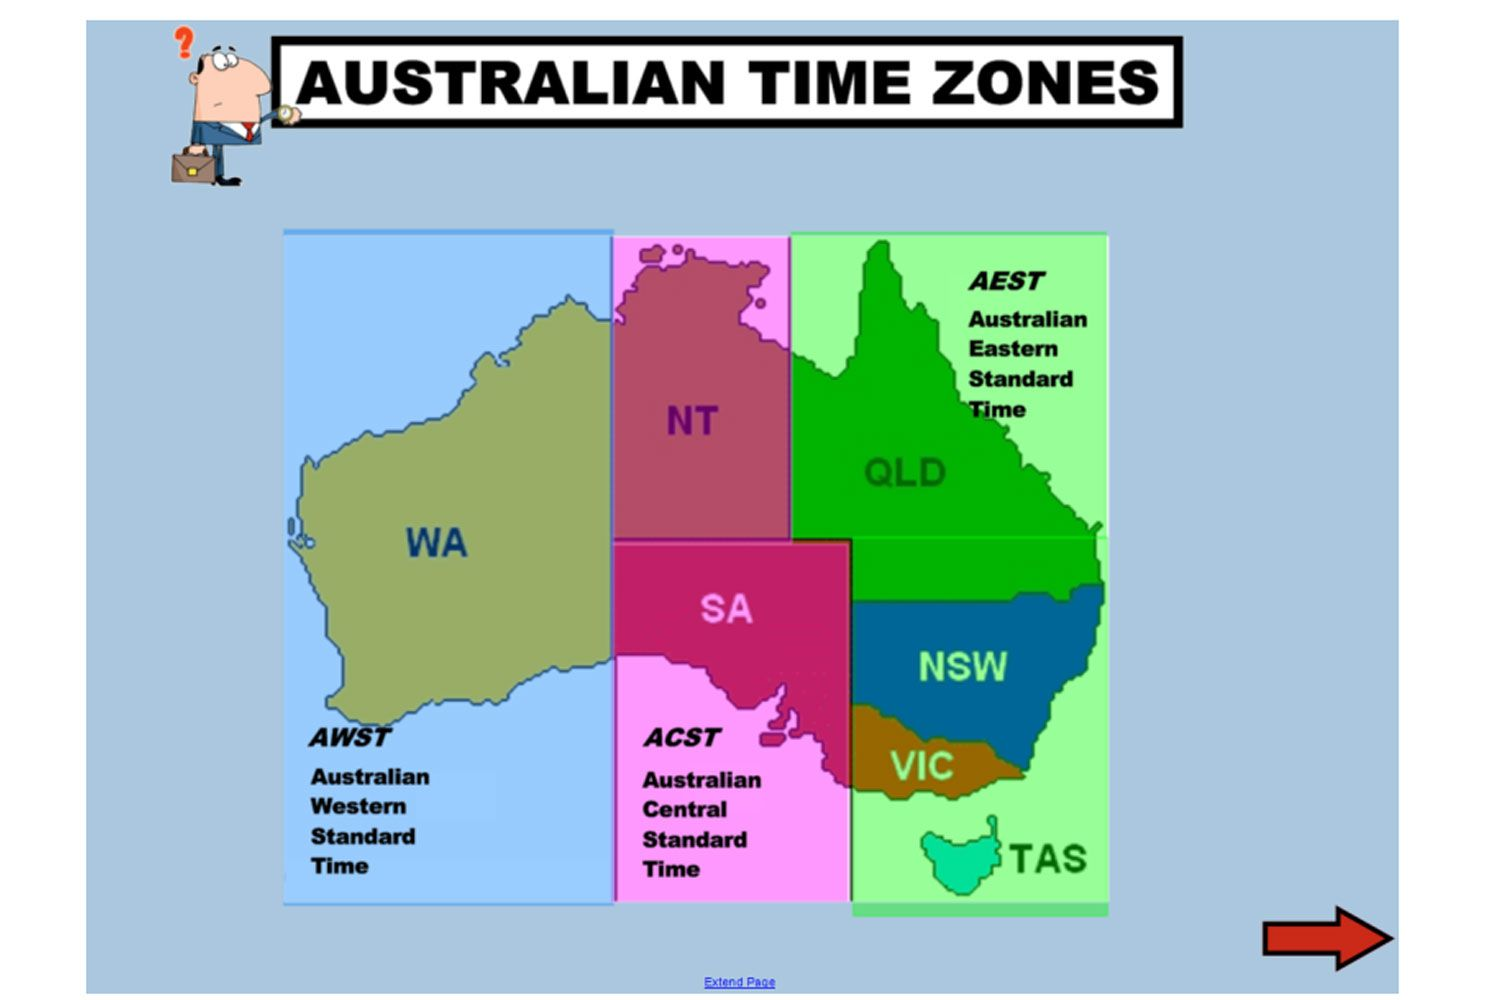 medium resolution of Learn all about Australian Time Zones and Daylight Saving Time with this  terrific IWB lesson. http://interactivel…   Year 6 maths